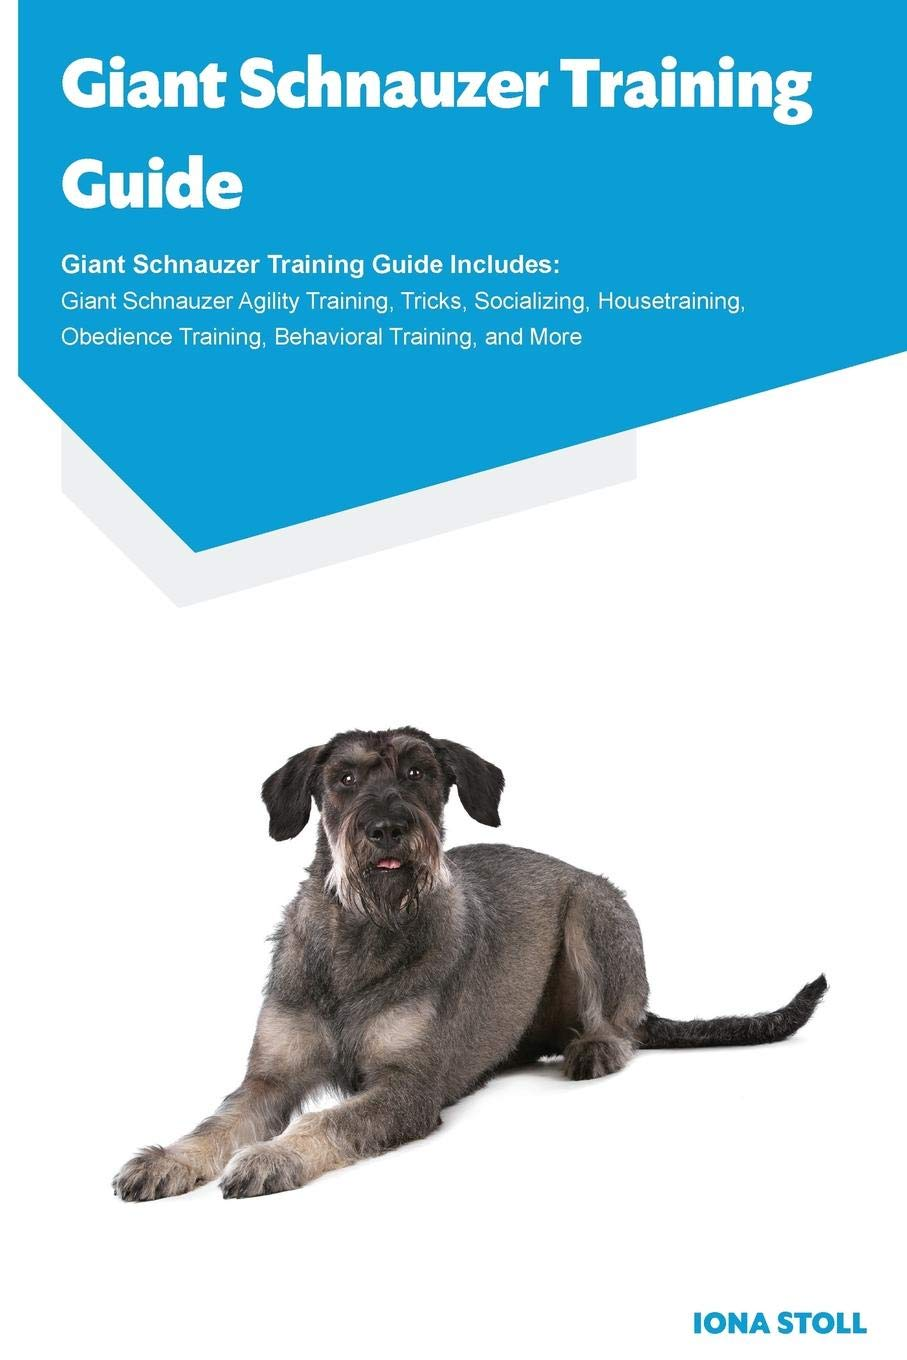 Giant-Schnauzer-Training-Guide-Giant-Schnauzer-Training-Guide-Includes-Giant-Schnauzer-Agility-Training-Tricks-Socializing-Housetraining-Obedience-Training-Behavioral-Training-and-More